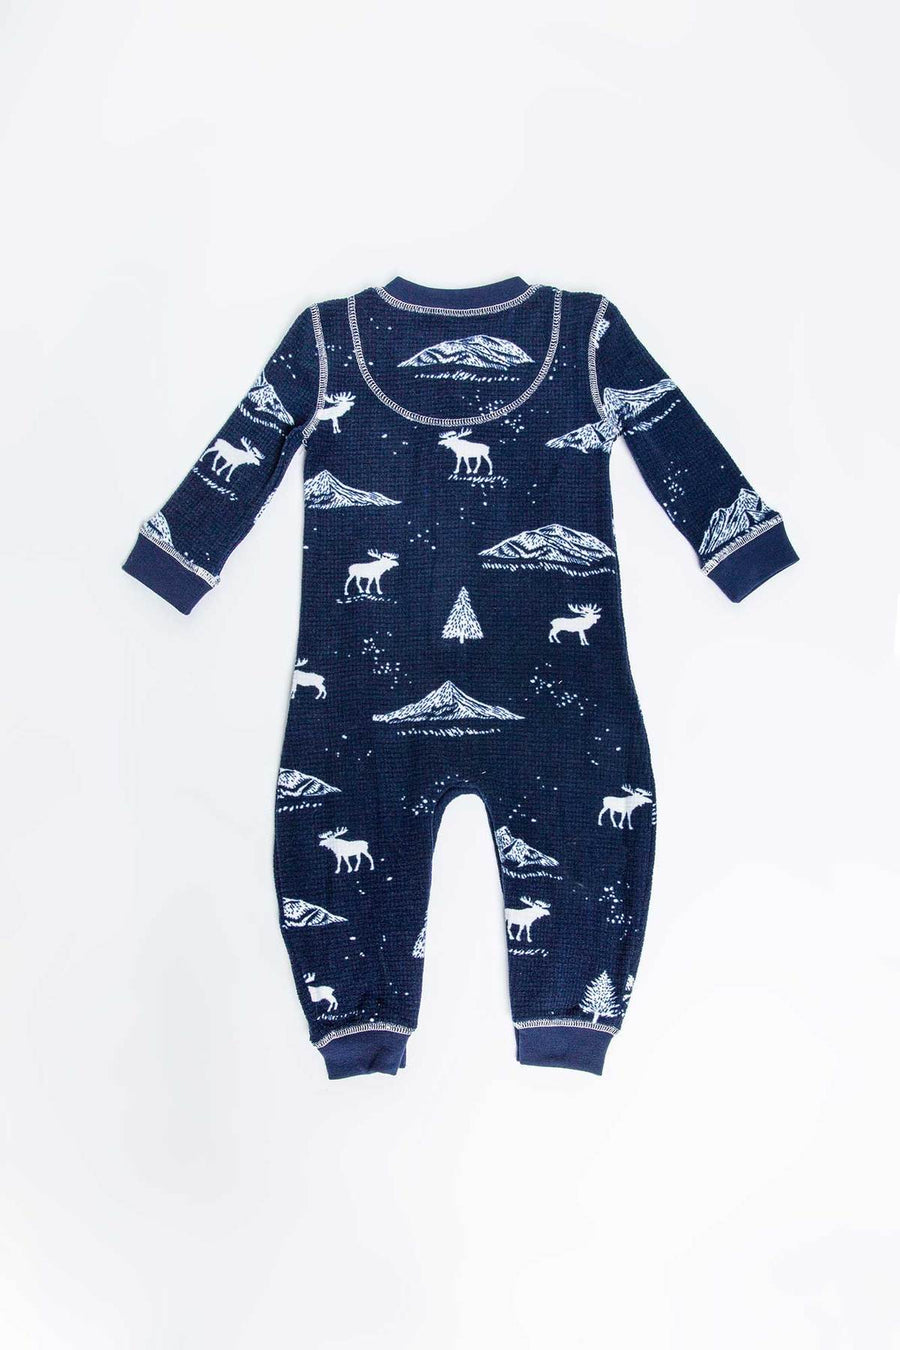 LET'S GET TOASTY MOOSE INFANT ROMPER